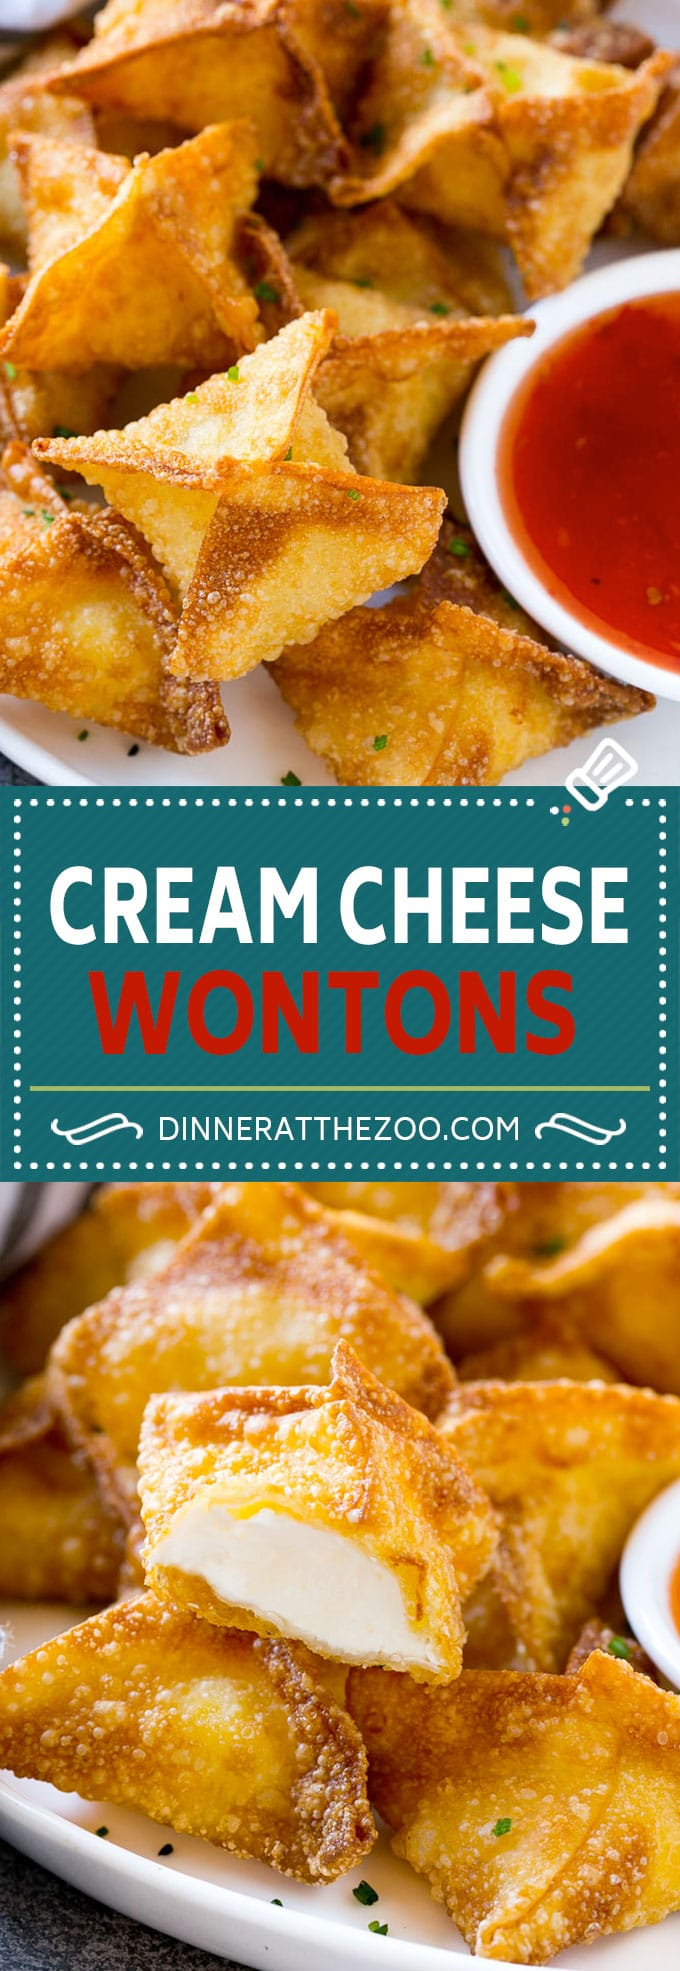 Cream Cheese Wontons Recipe | Cream Cheese Rangoon | Wonton Appetizer #creamcheese #cheese #wontons #appetizer #dinneratthezoo